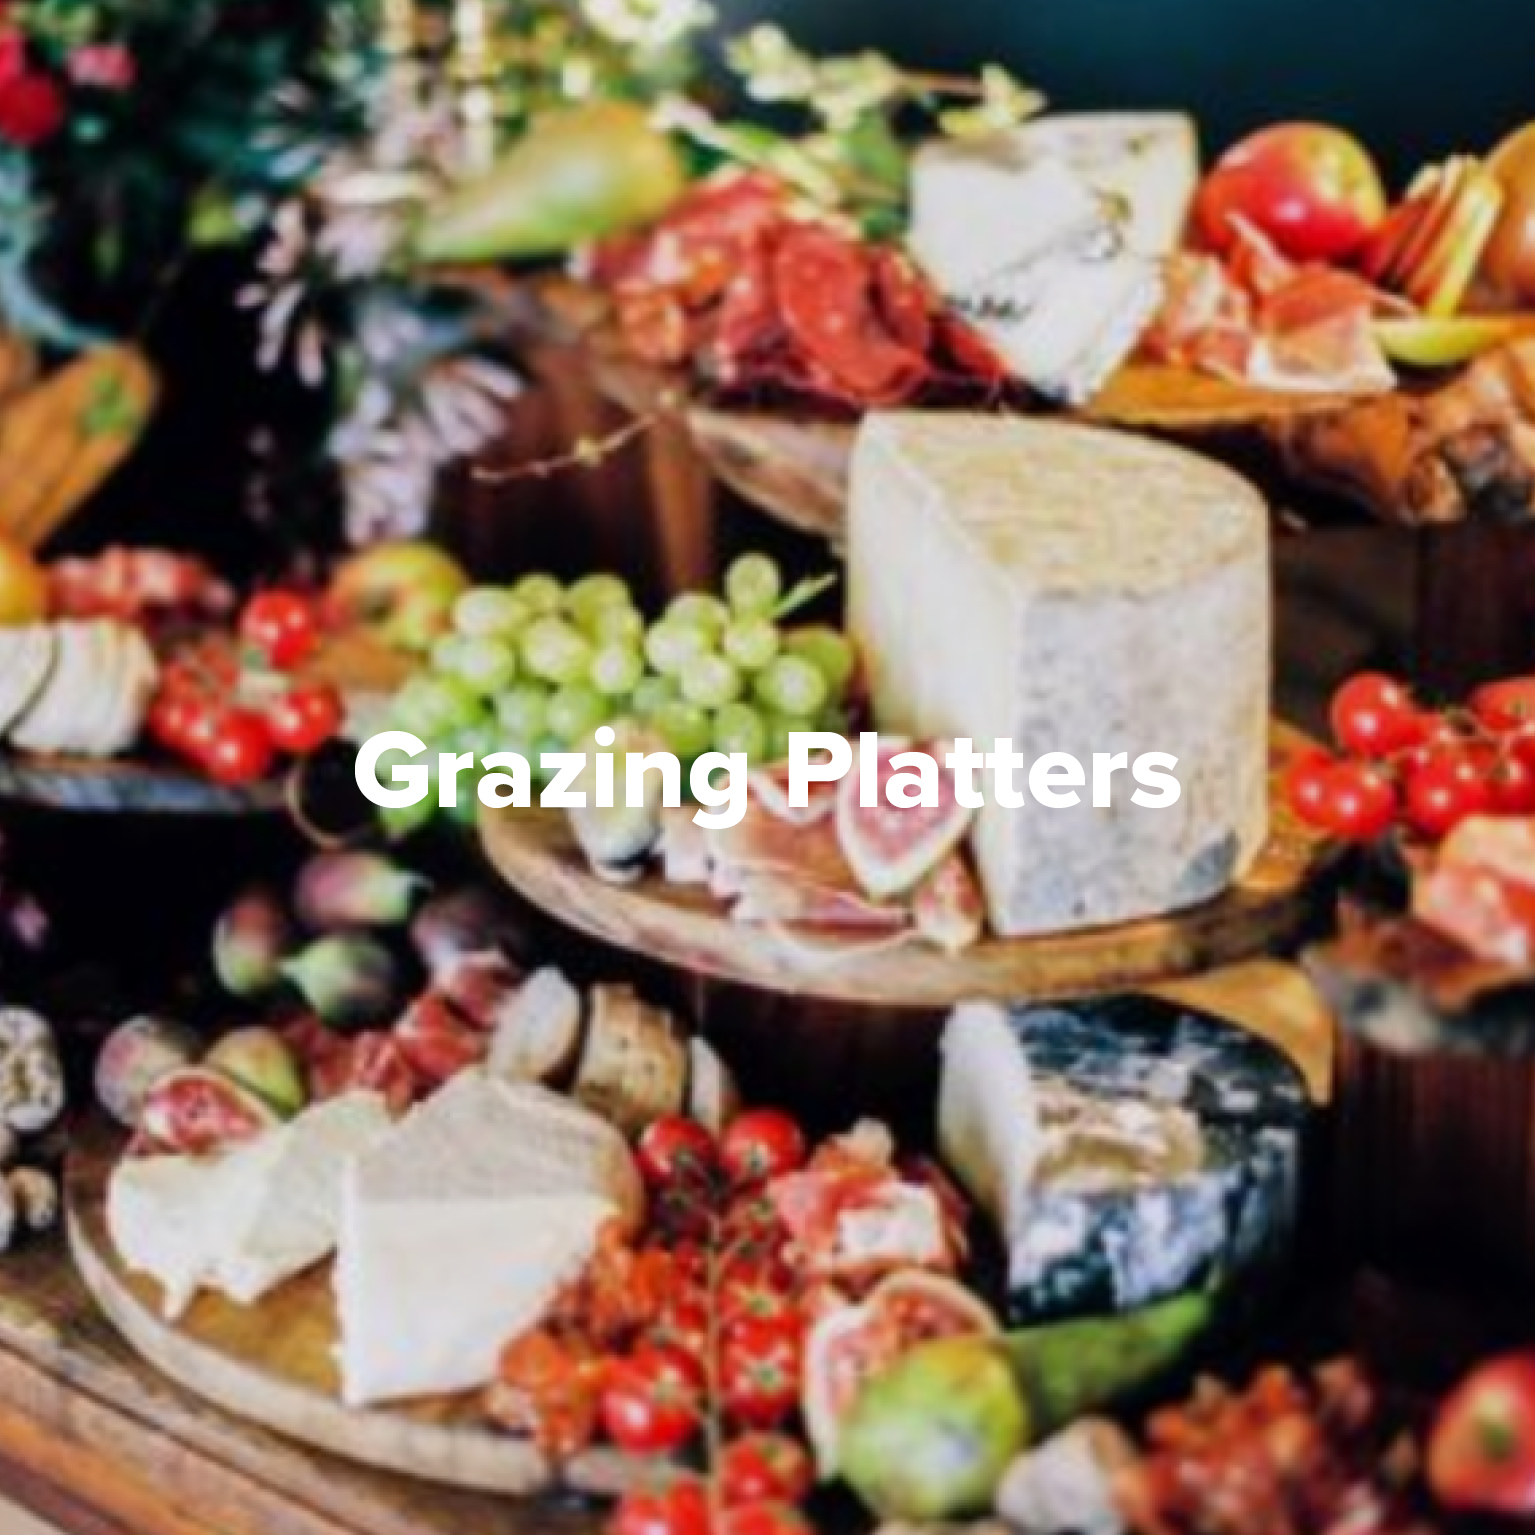 Grazing Platters at Rowers on Cooks River